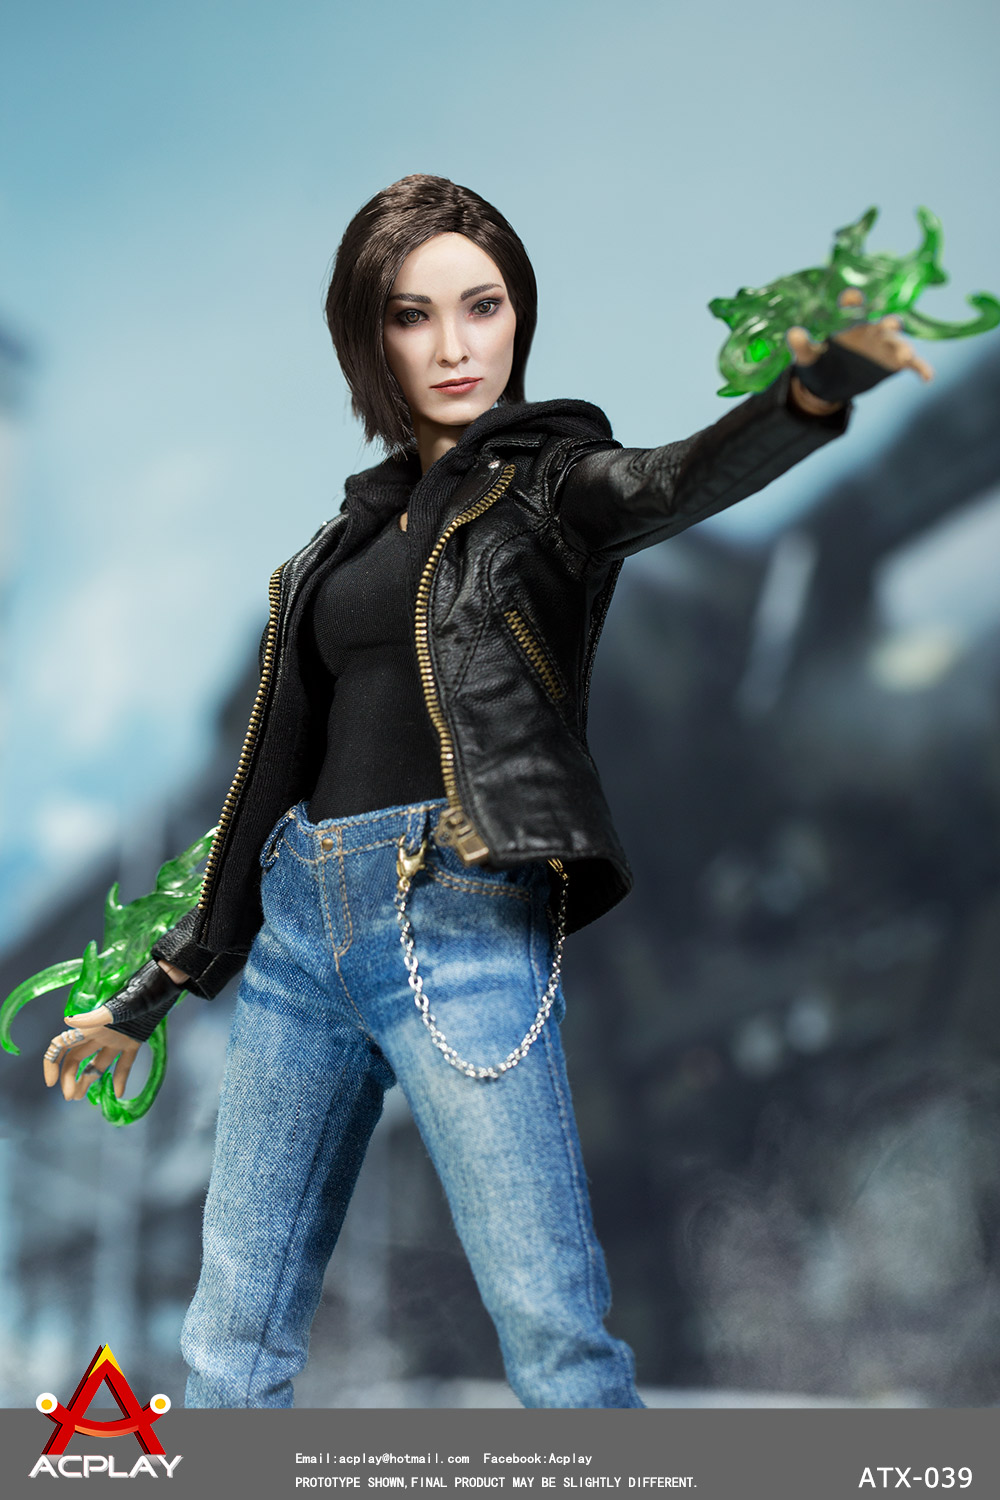 XMen - NEW PRODUCT: ACPlay new product: 1/6 ATX039 super hero magnetic girl box doll 8100